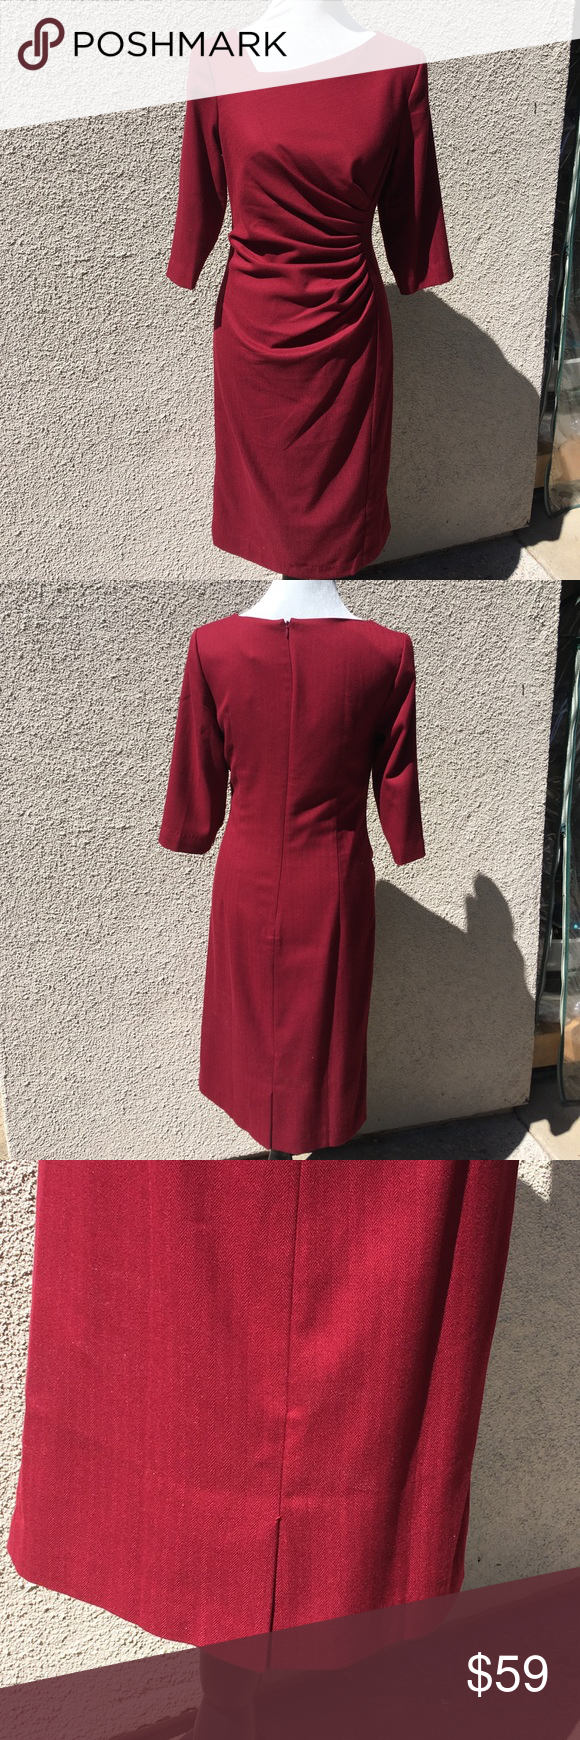 Wine red dress nwt boutique size uk belle dress and red satin